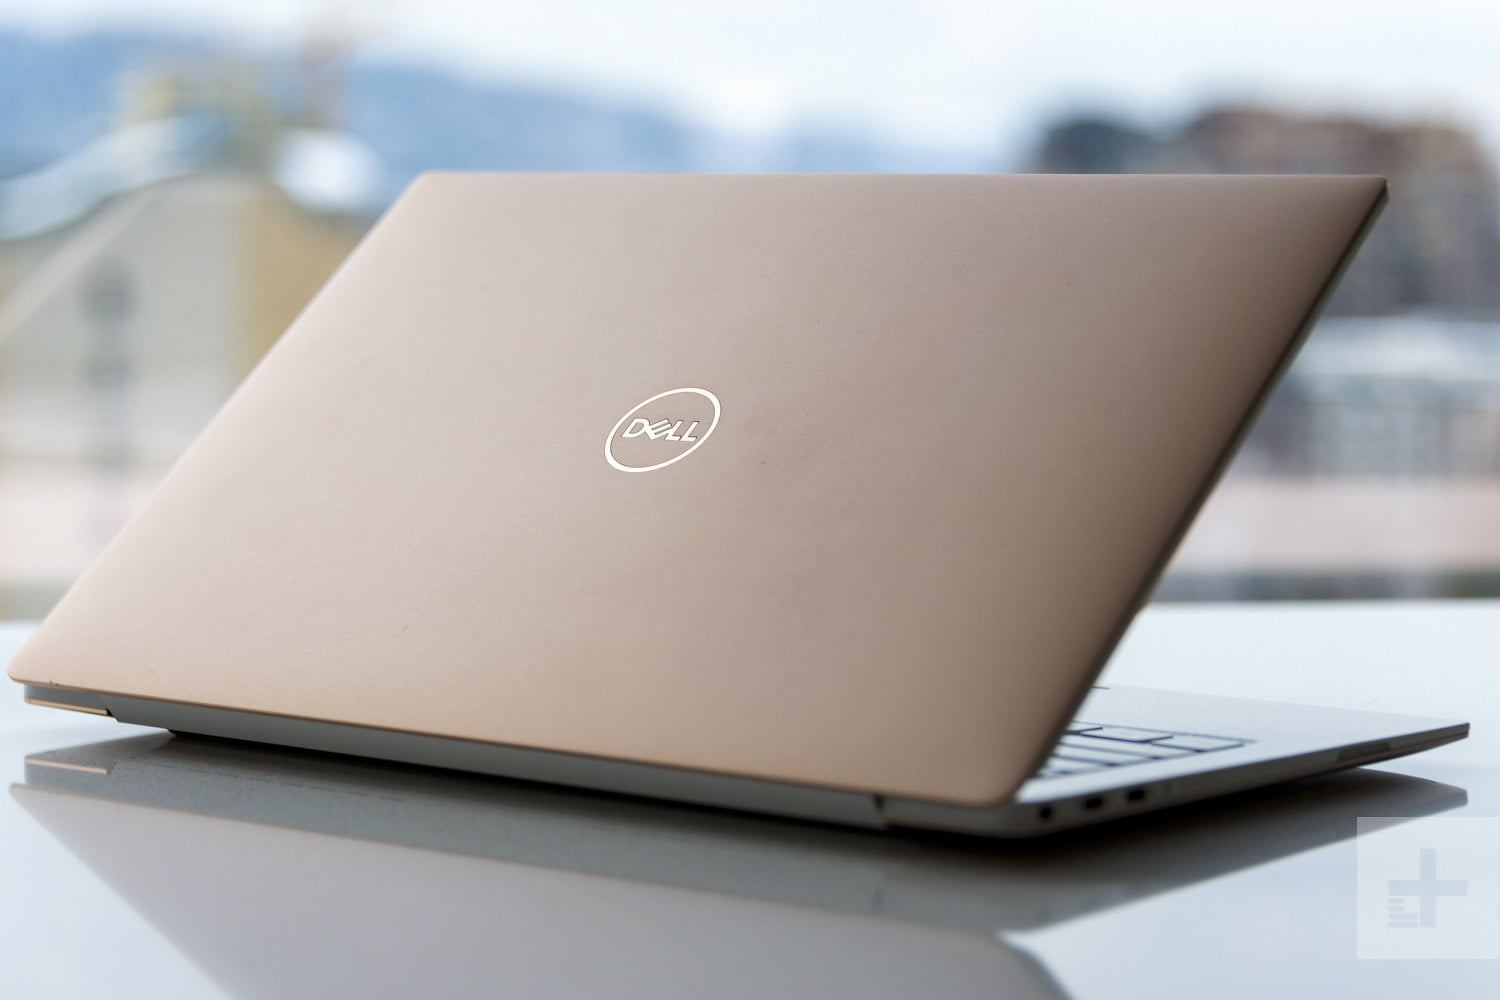 Dell XPS 13 9370 review | Laptop partially closed facing away from the camera at an angle showing lid and trim